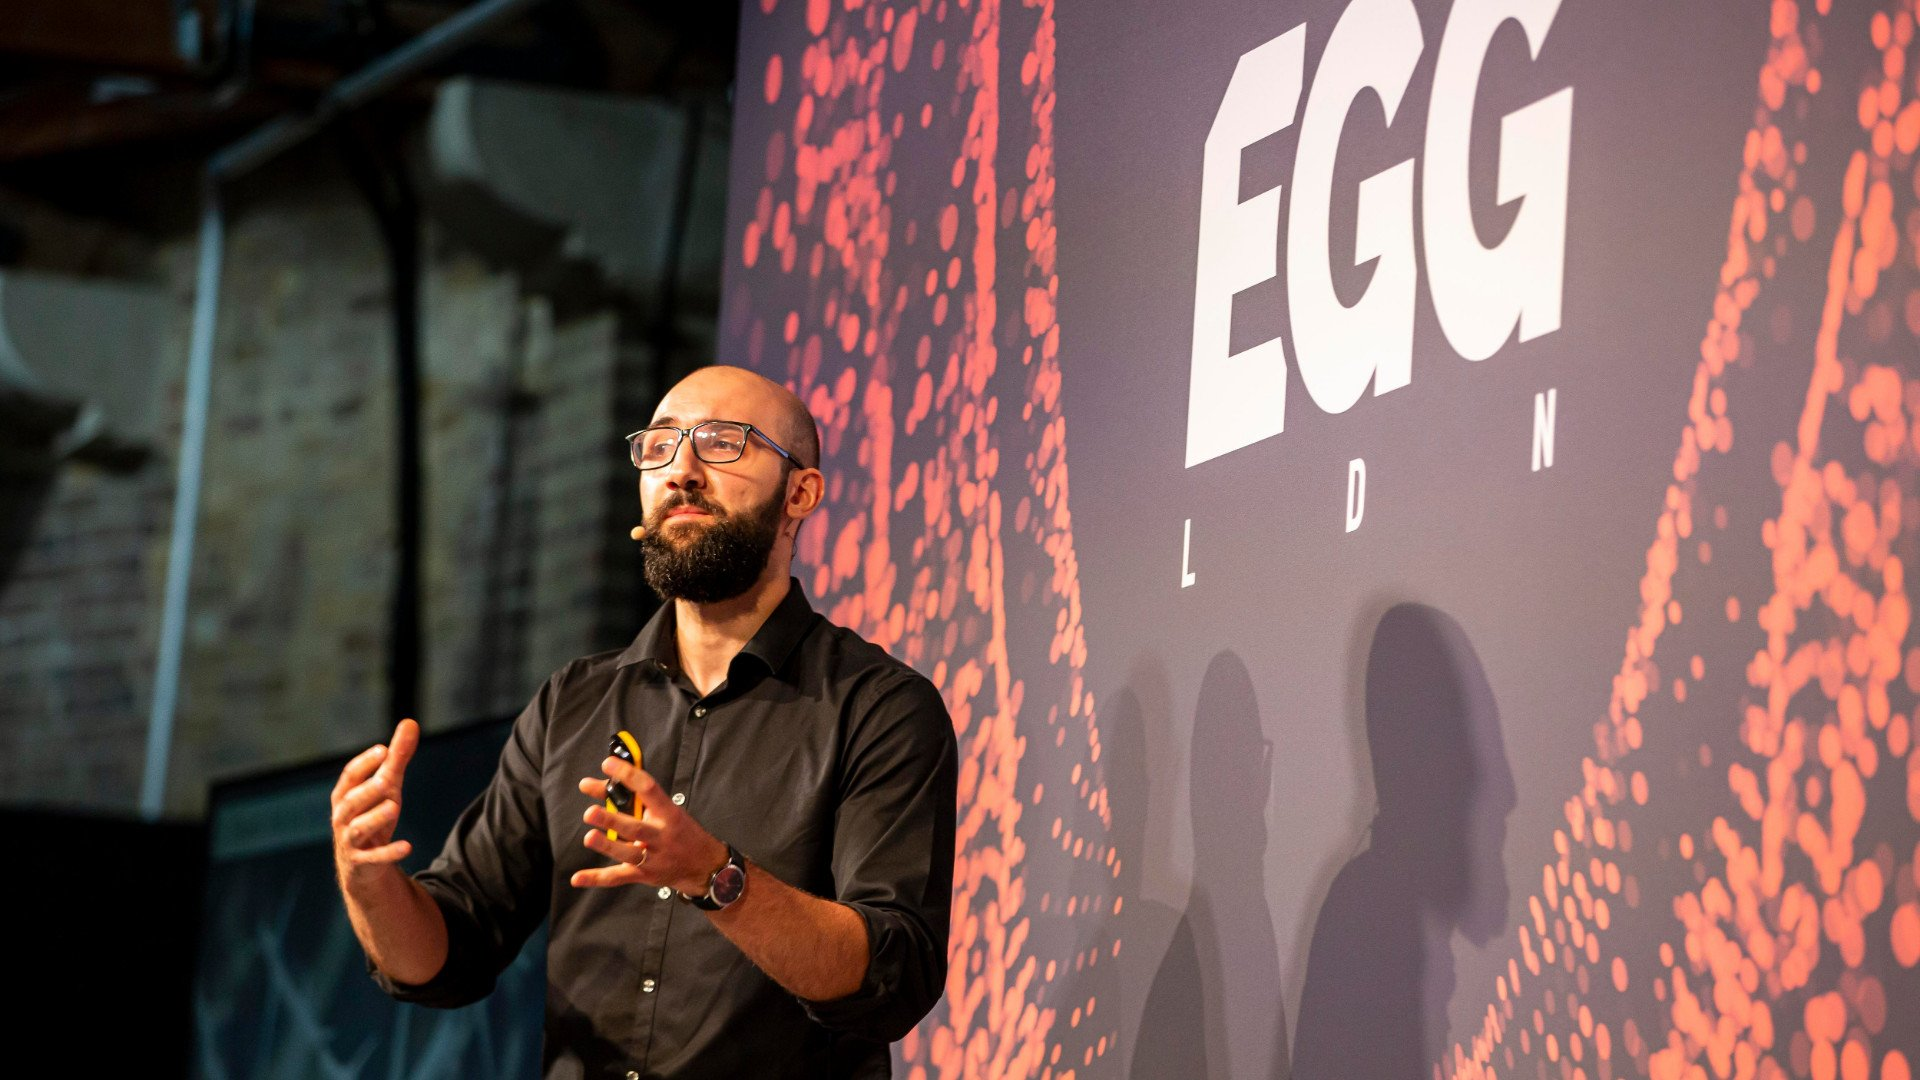 egg on air thumbnail Leveraging the Law of Averages to Deal w Data Science Frustration-High-Quality